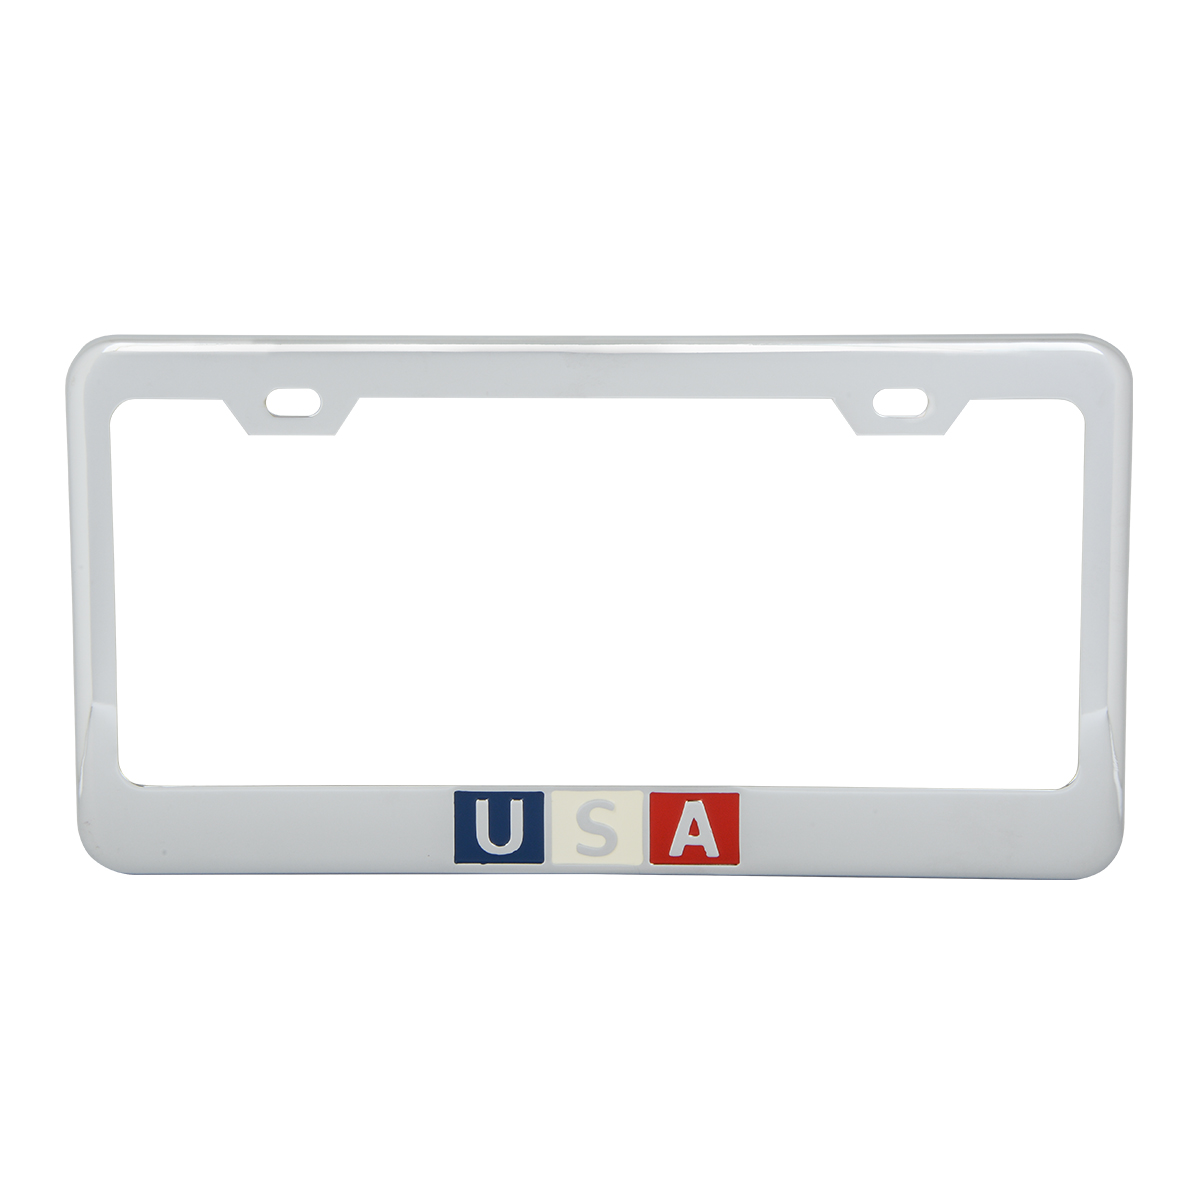 Chrome Plated Steel USA License Plate Frame